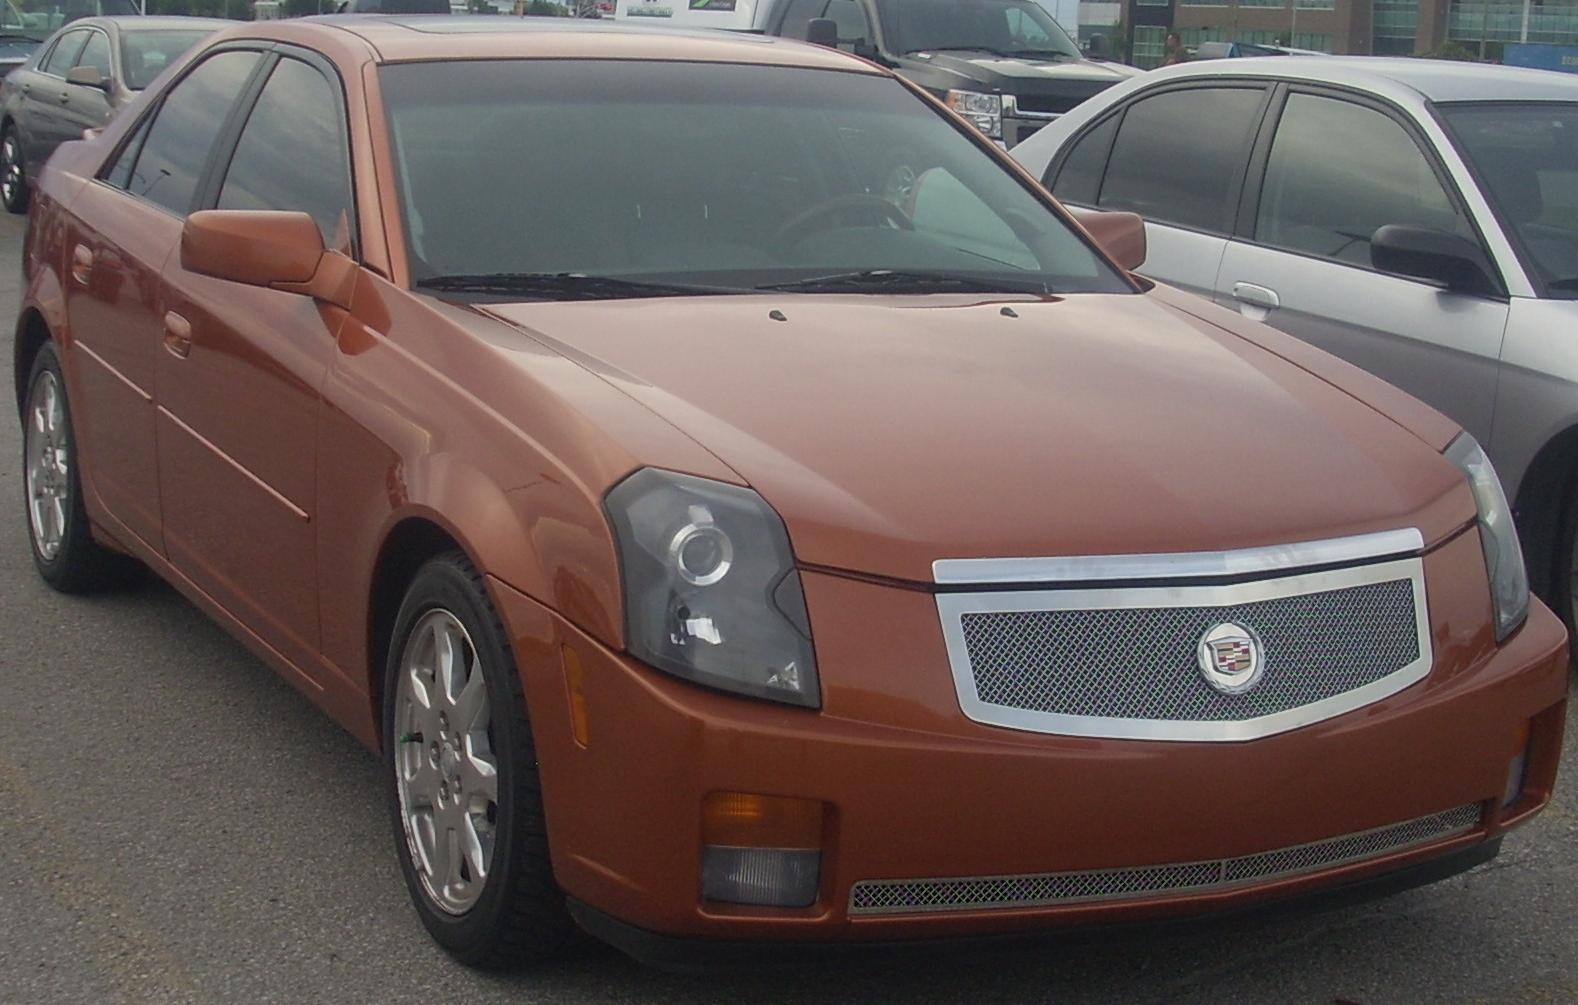 File:Tuned '03-'05 Cadillac CTS (Les chauds vendredis '10).jpg ...